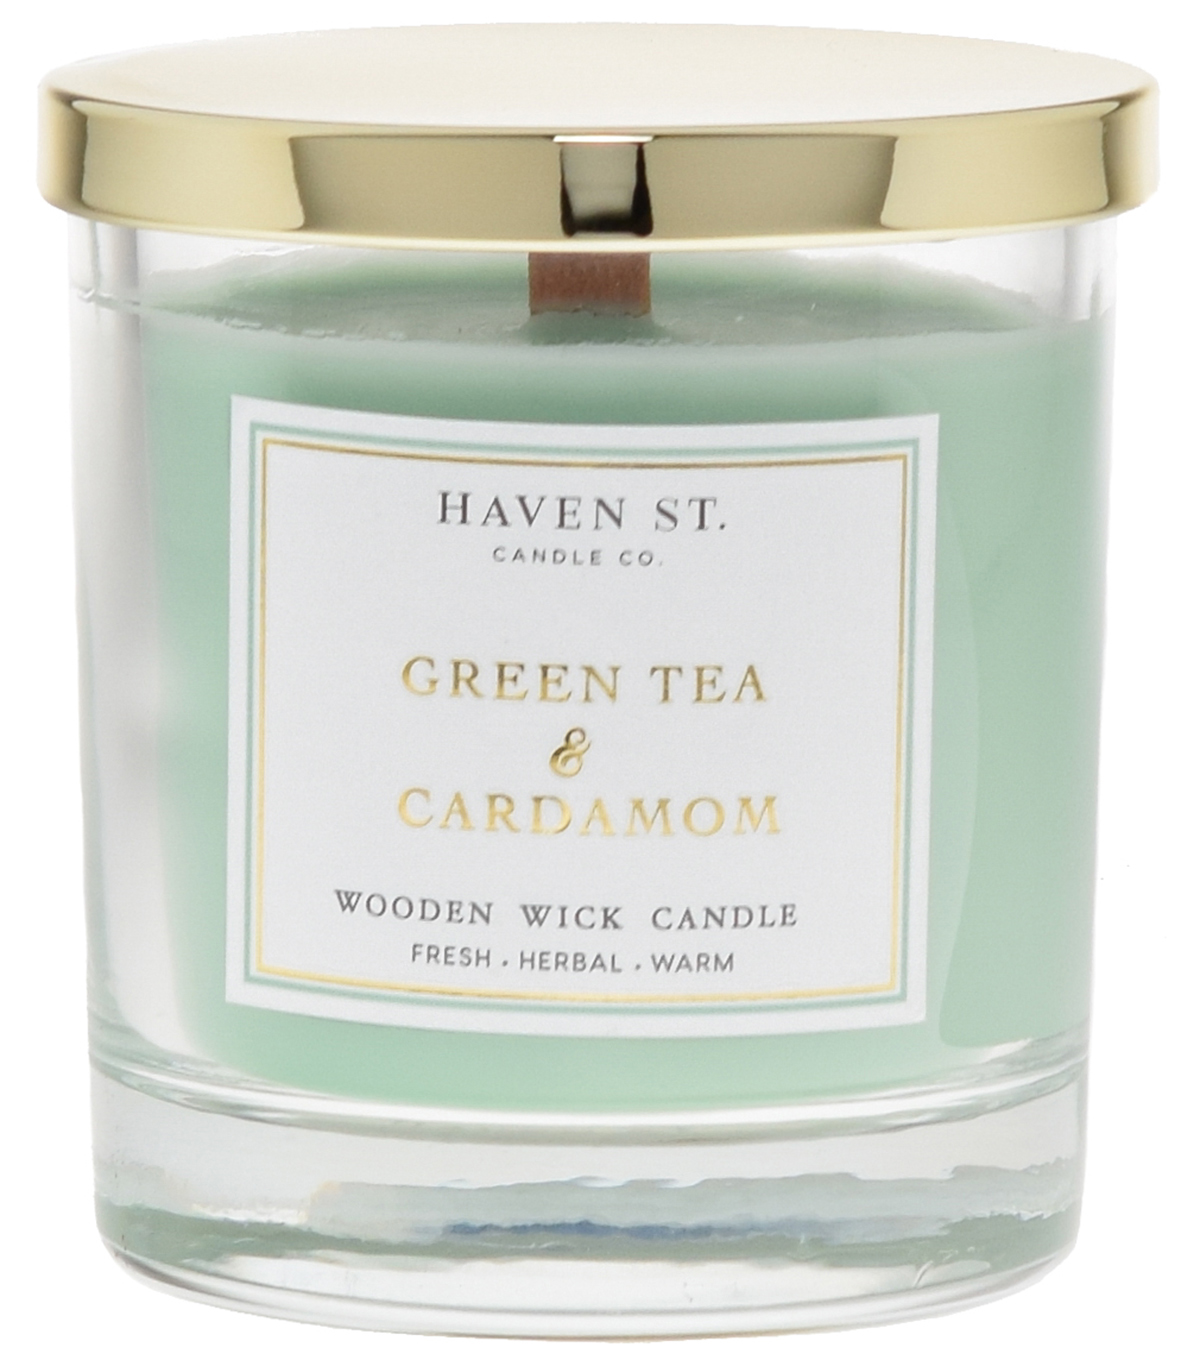 Haven St. 8oz Wooden Wick Jar Candle-Green Tea